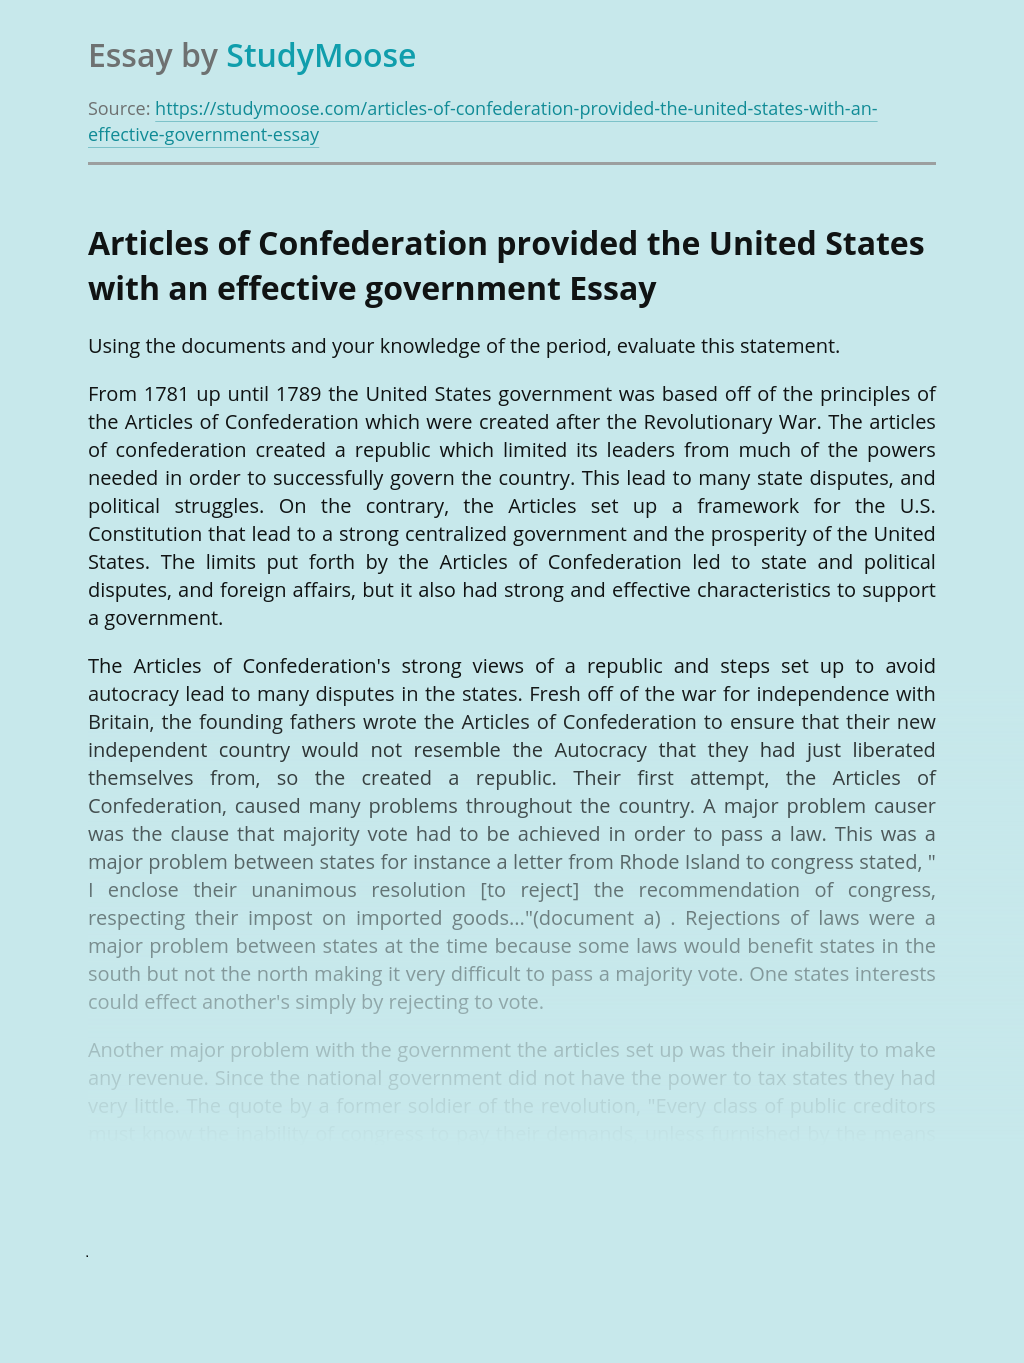 Articles of Confederation provided the United States with an effective government